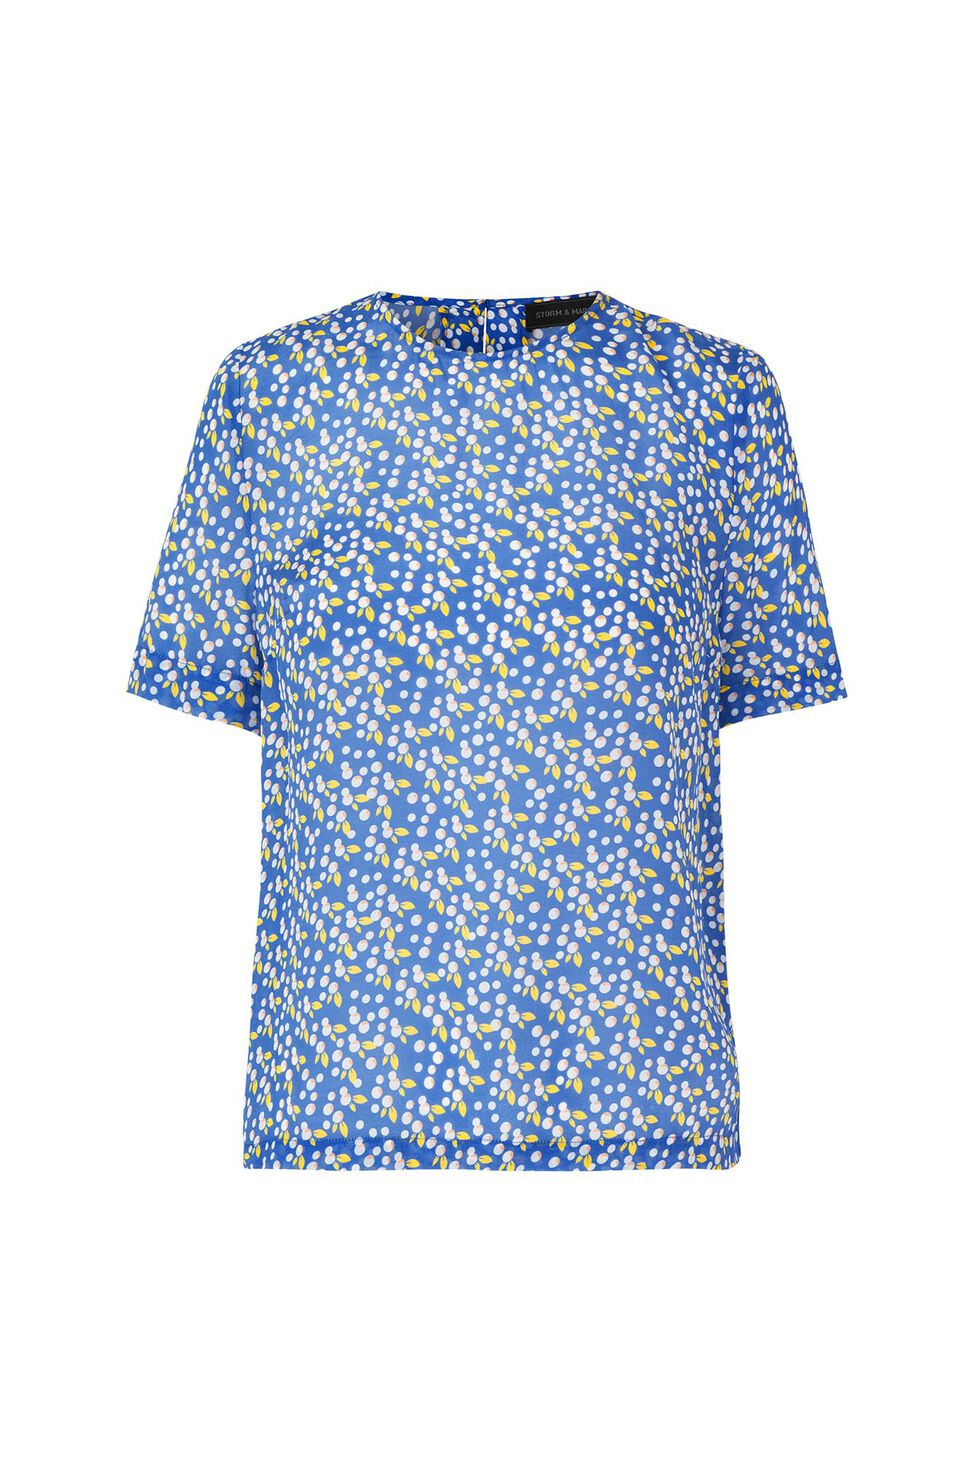 Balan-ss 22732, ALL OVER PRINT BLUE